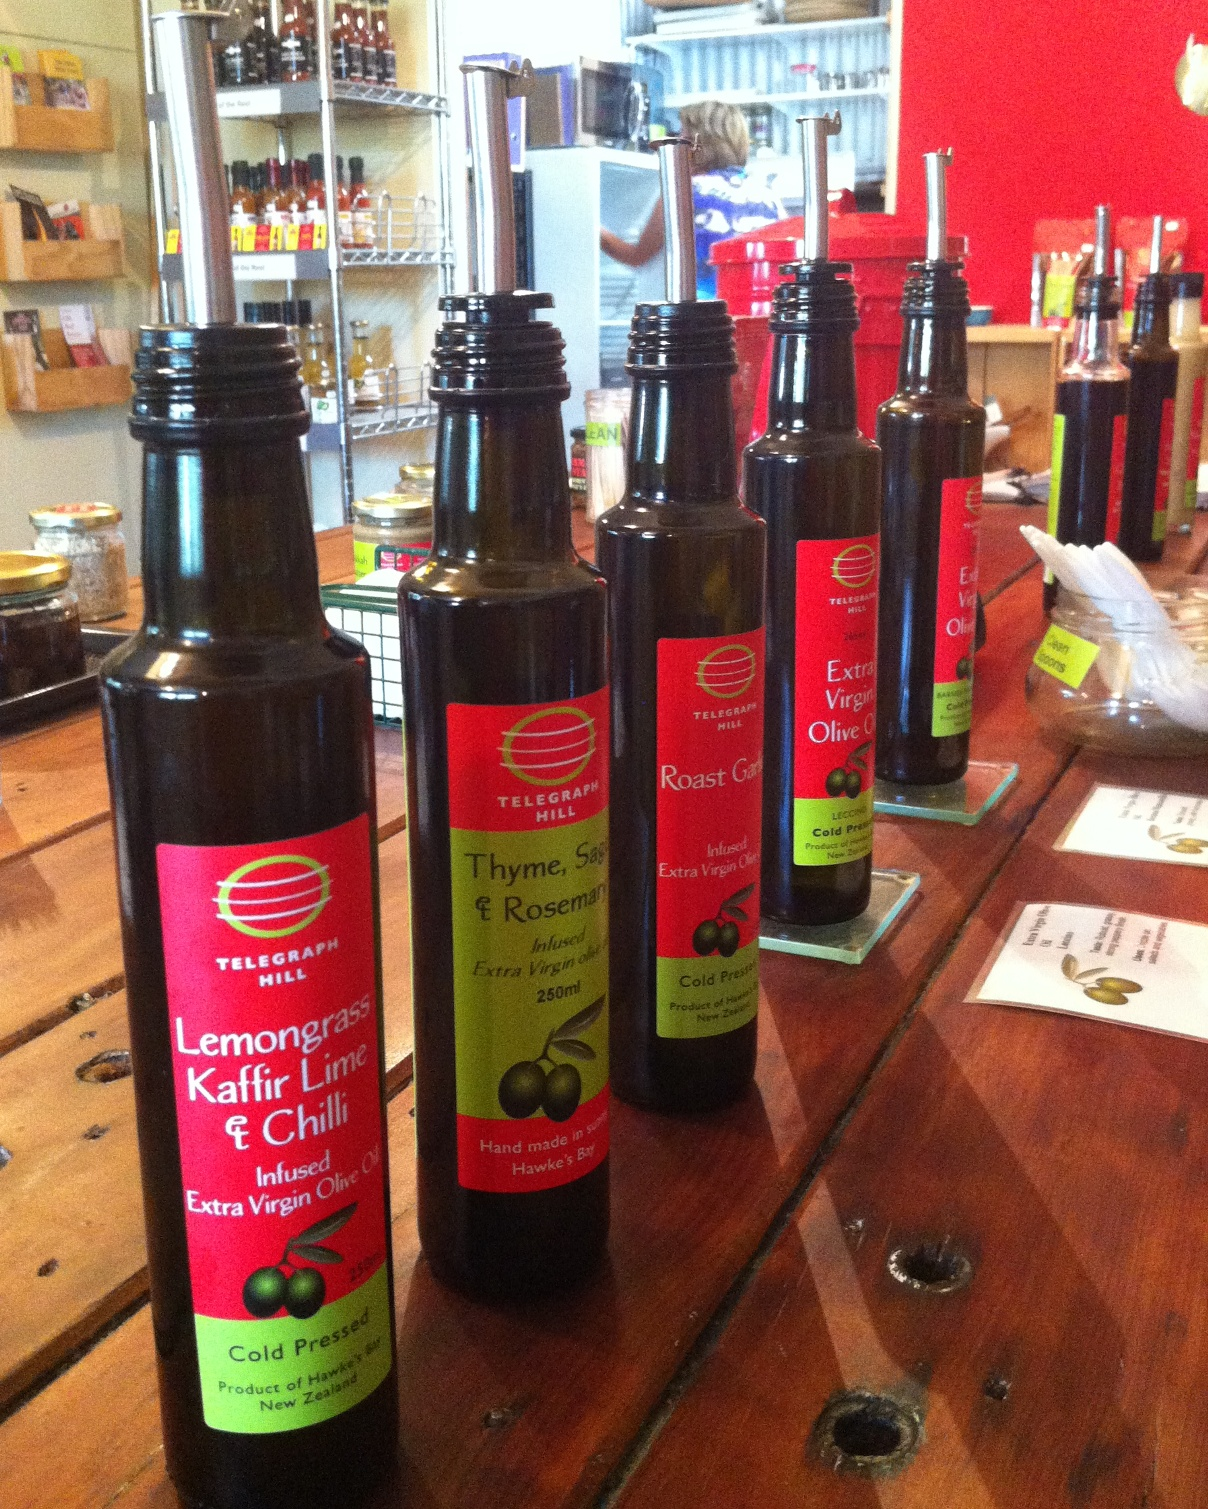 Telegraph Hill olive oil tasting